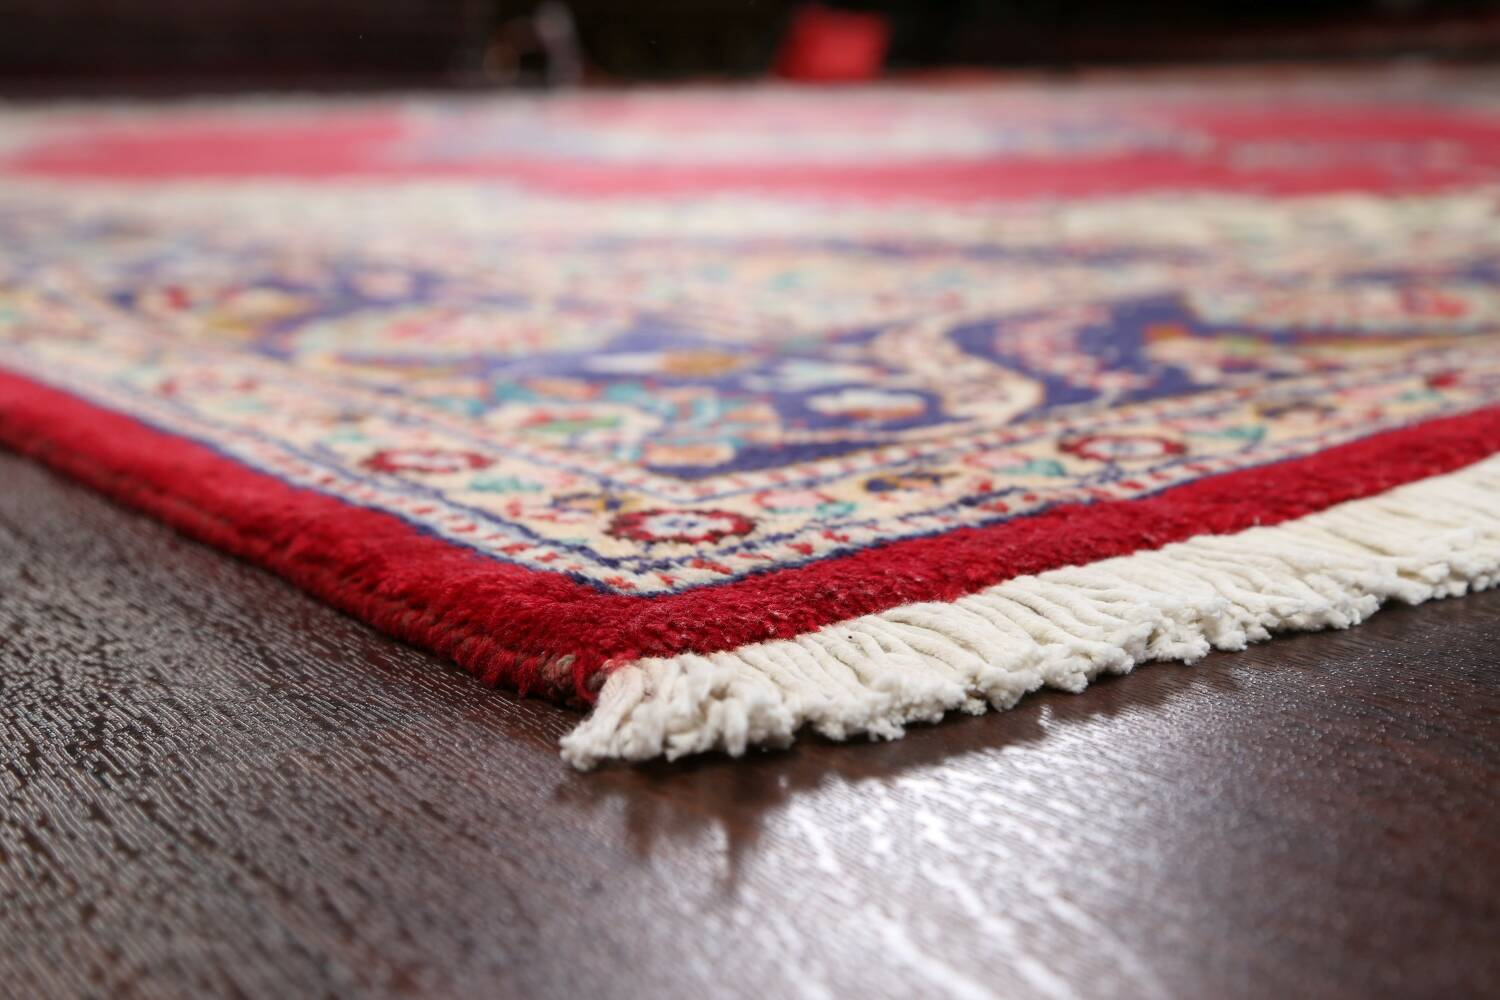 Floral Red Tabriz Persian Area Rug 10x13 image 6